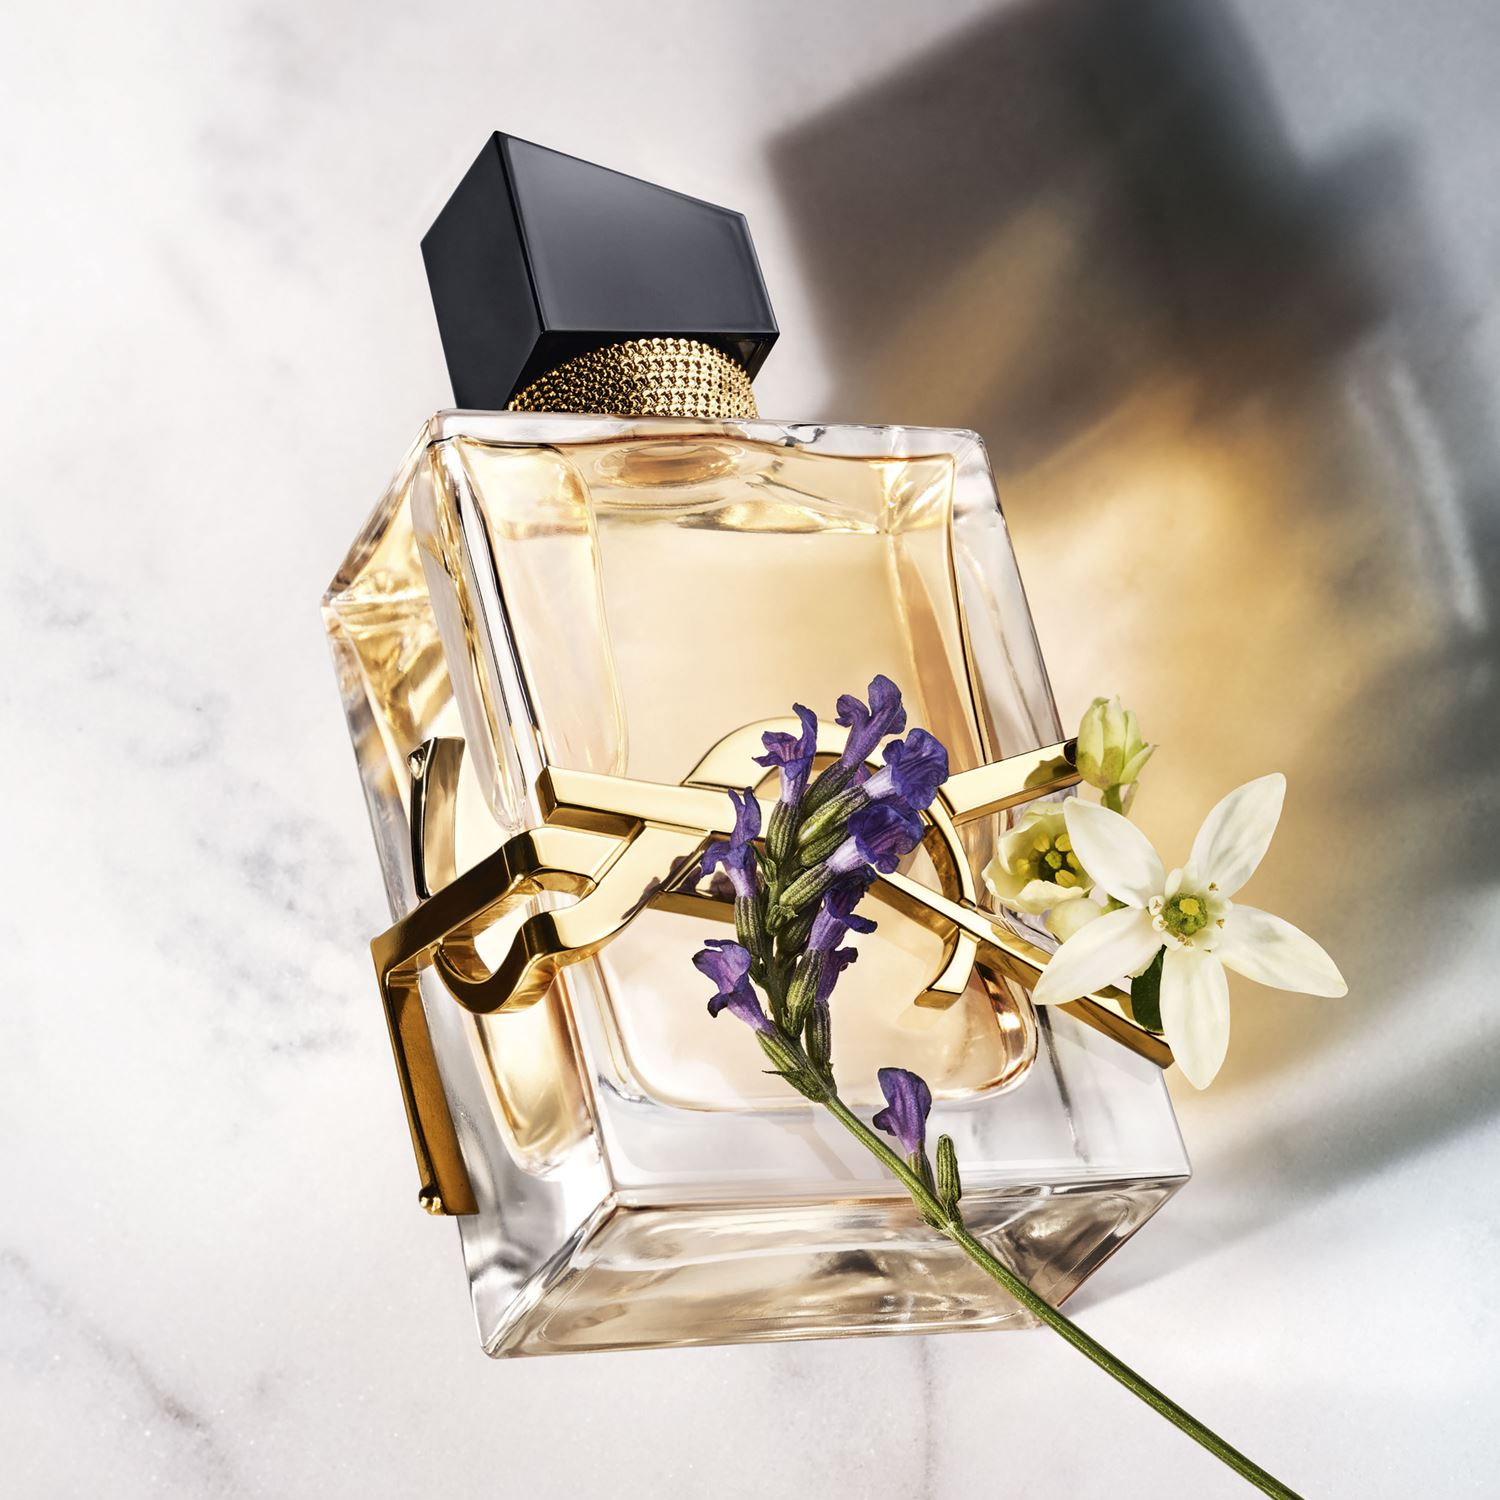 Saint Perfume A Women Fragrance Libre Laurent Yves New For 2019 LUMSzVpjGq